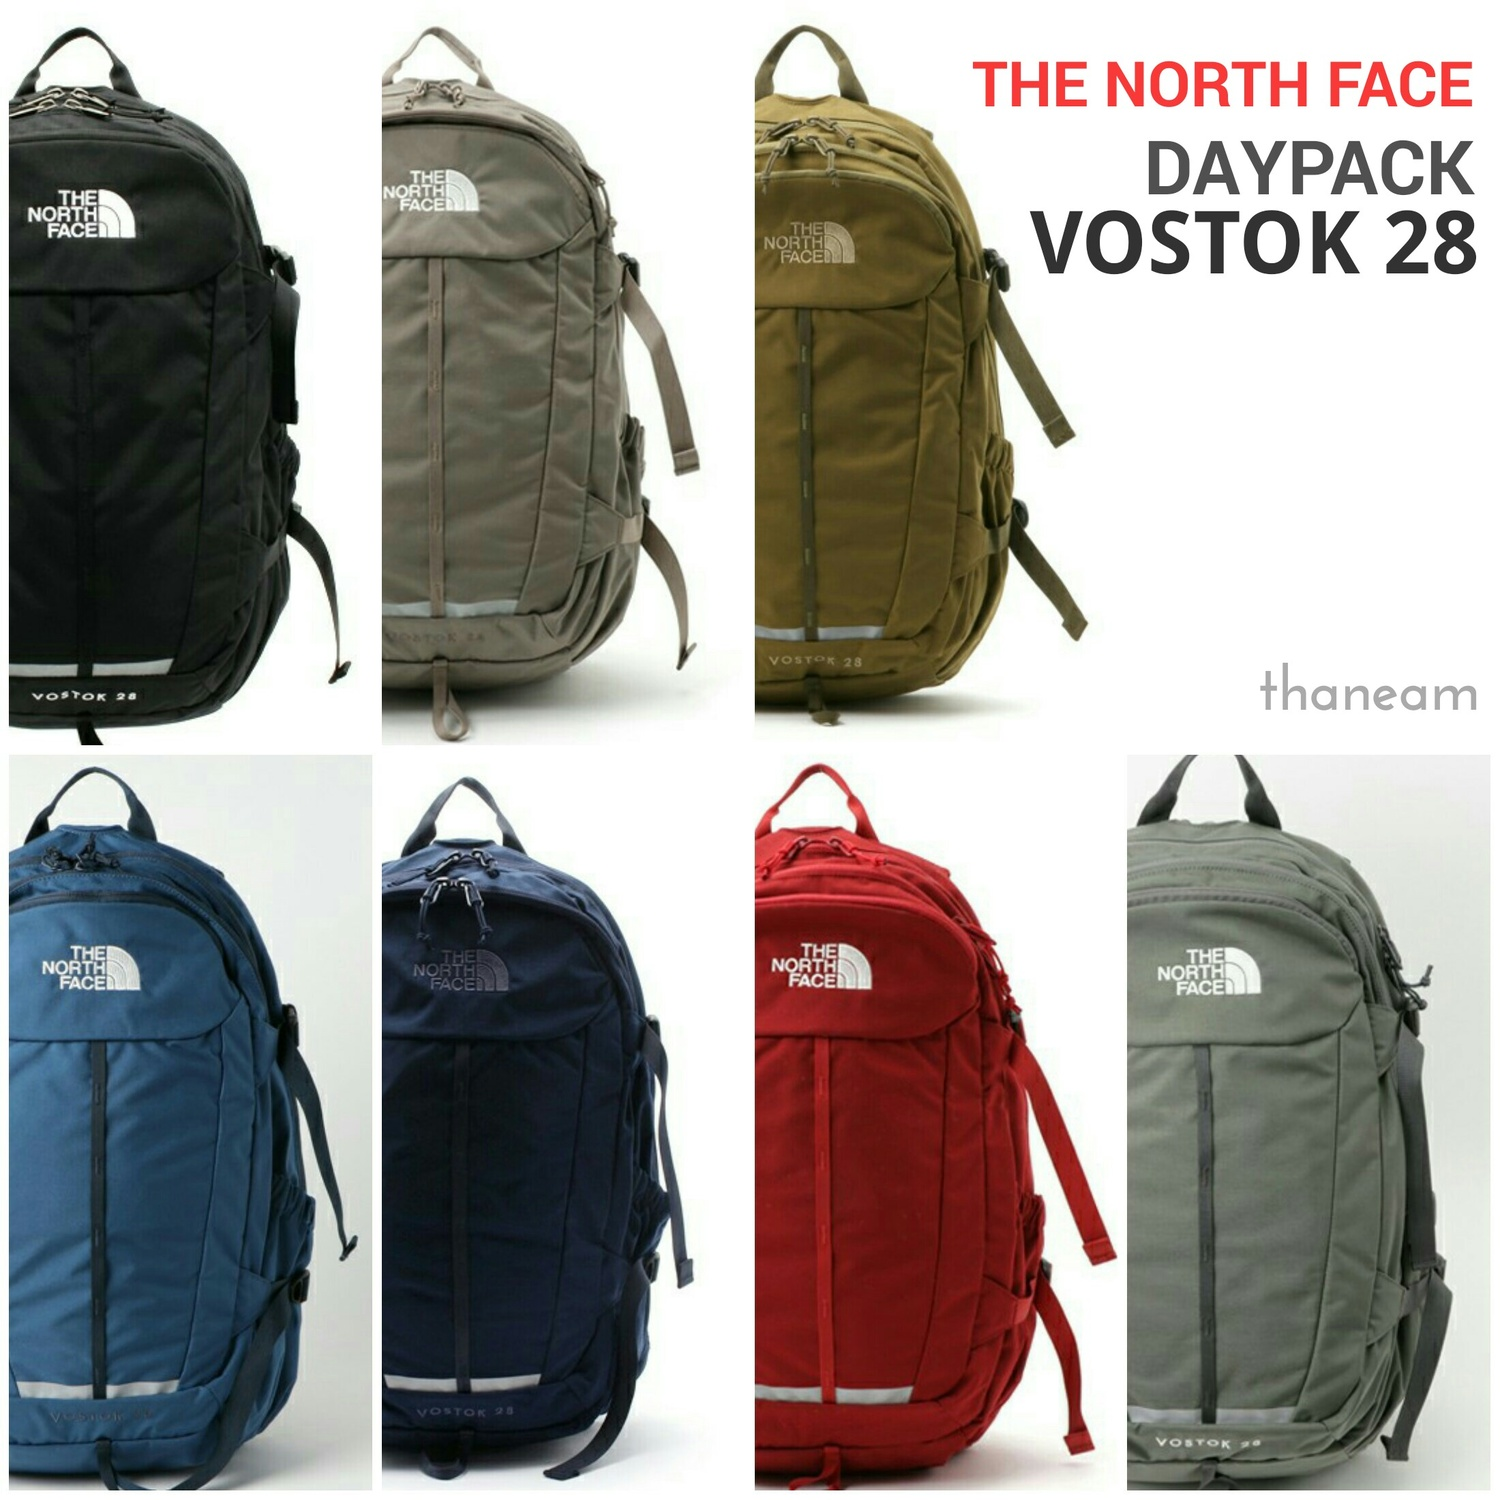 THE NORTH FACE :VOSTOK 28